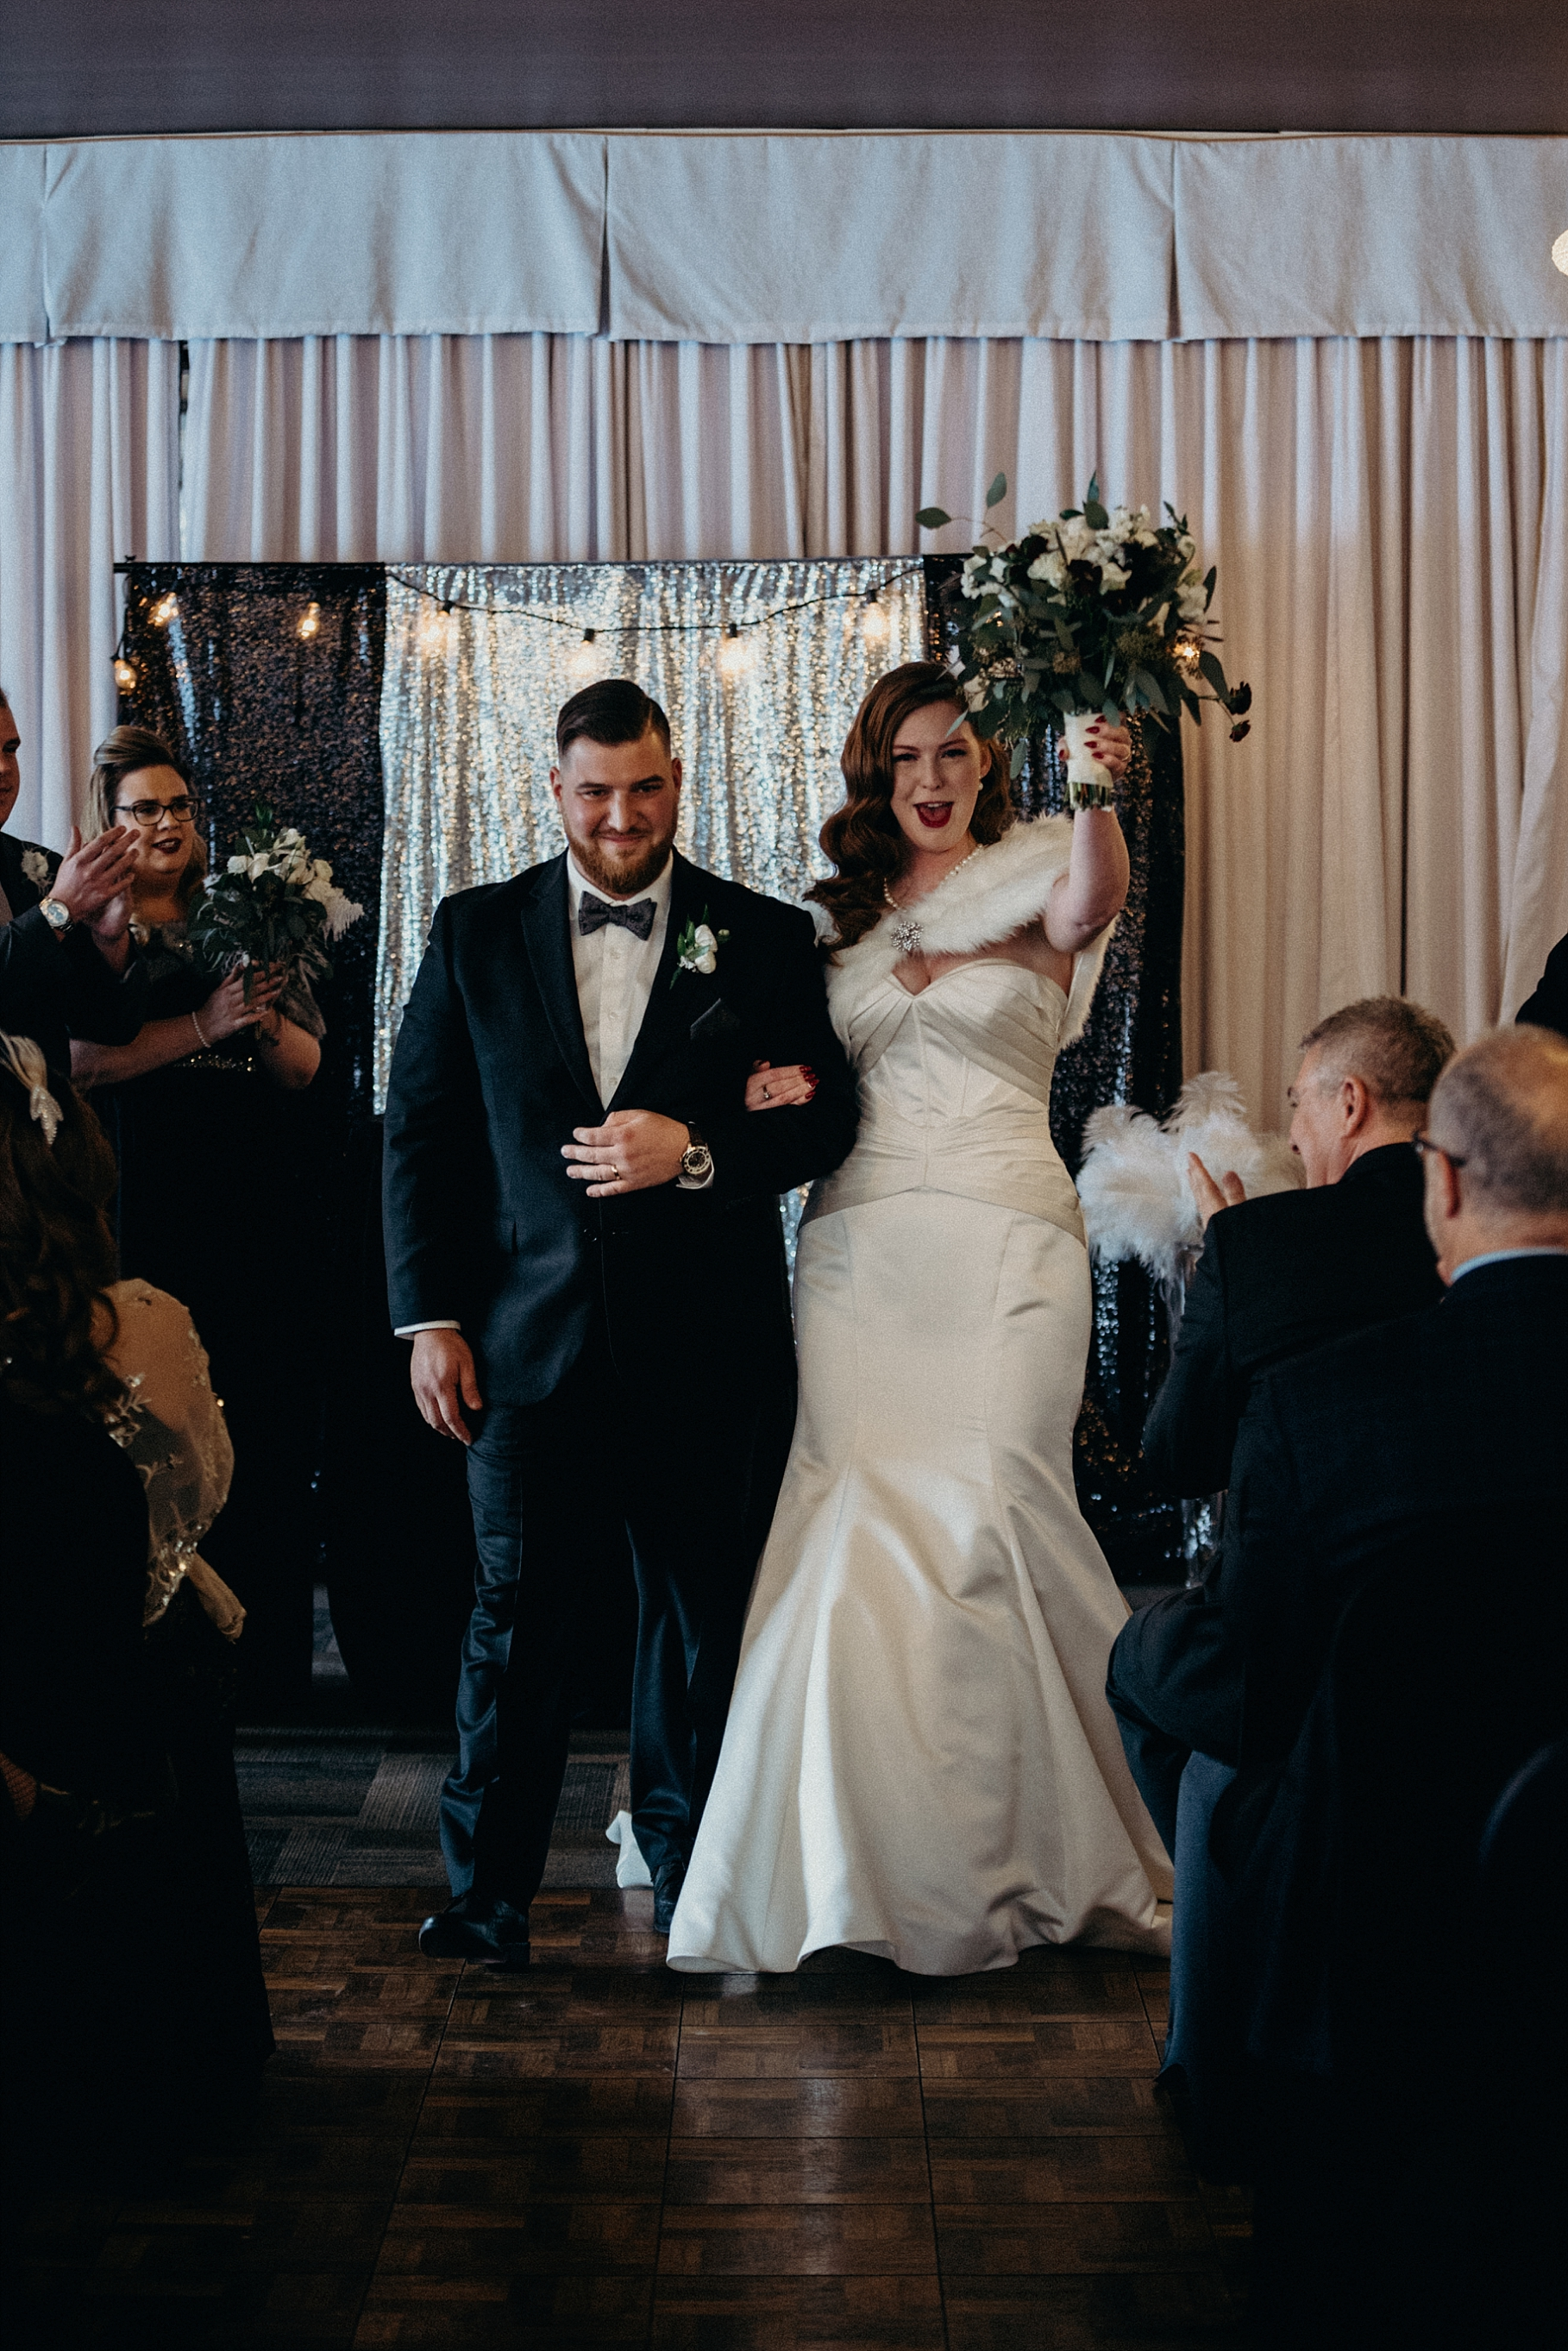 Orchard View Wedding by Mocha Tree Studios Ottawa Wedding and Engagement Photographer and Videographer Dark Moody Intimate Authentic Modern Romantic Cinematic Best Candid 15